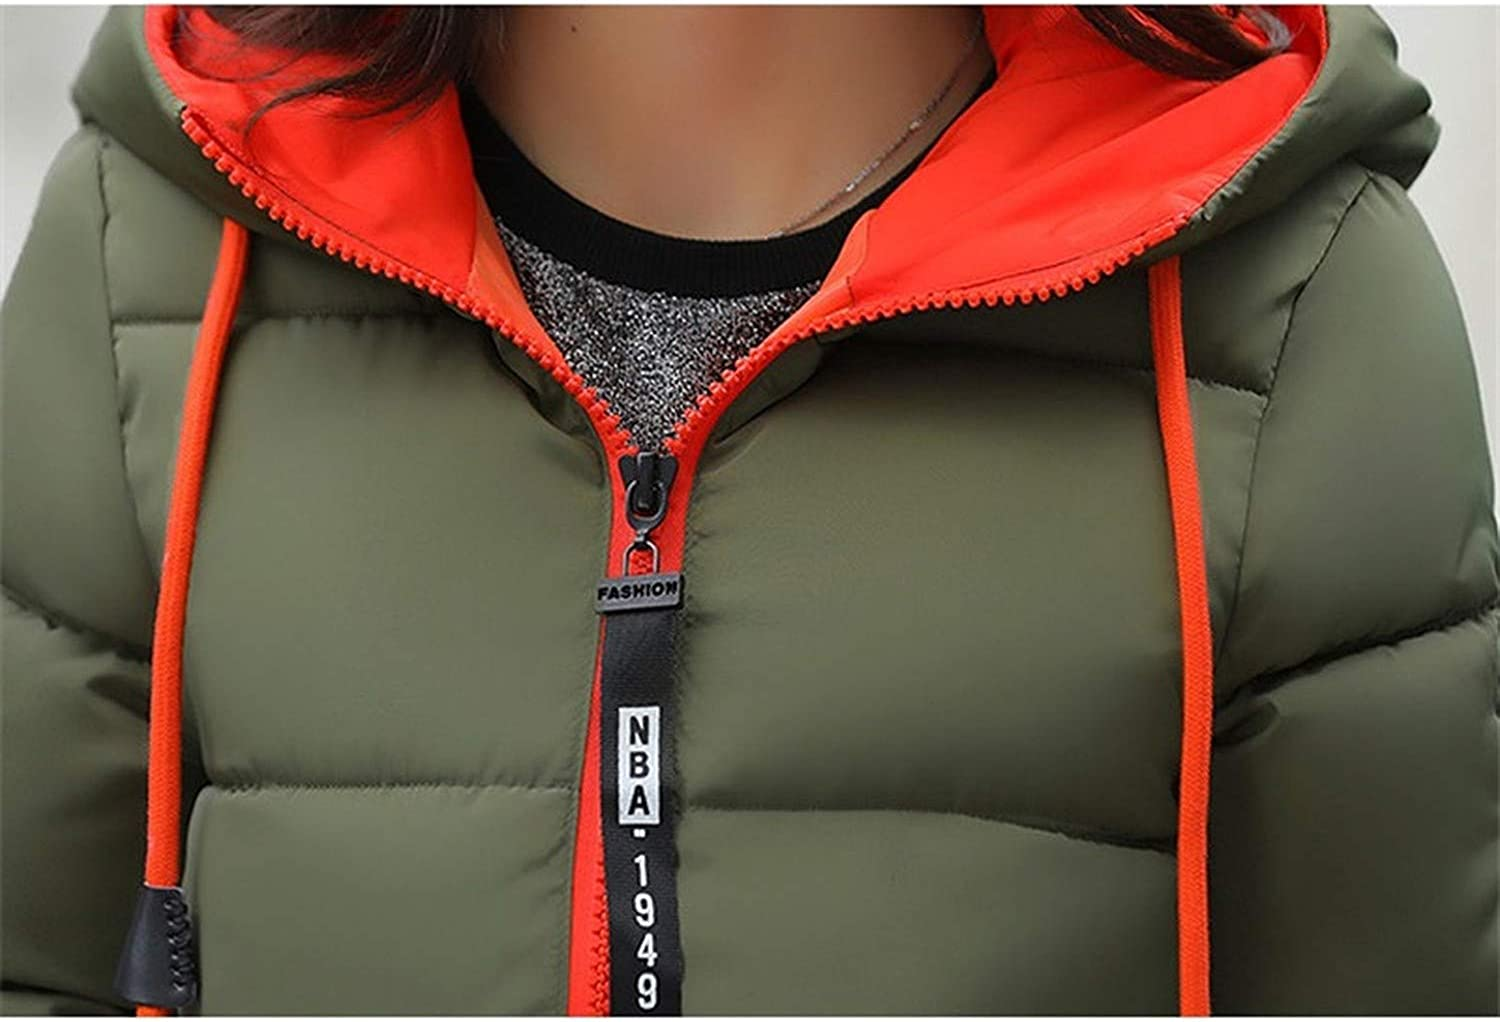 Show-Show-Fashion/&coats Winter Down Cotton Jacket Long Parkas for Women Thick Warm Hooded,ArmyGreen,M